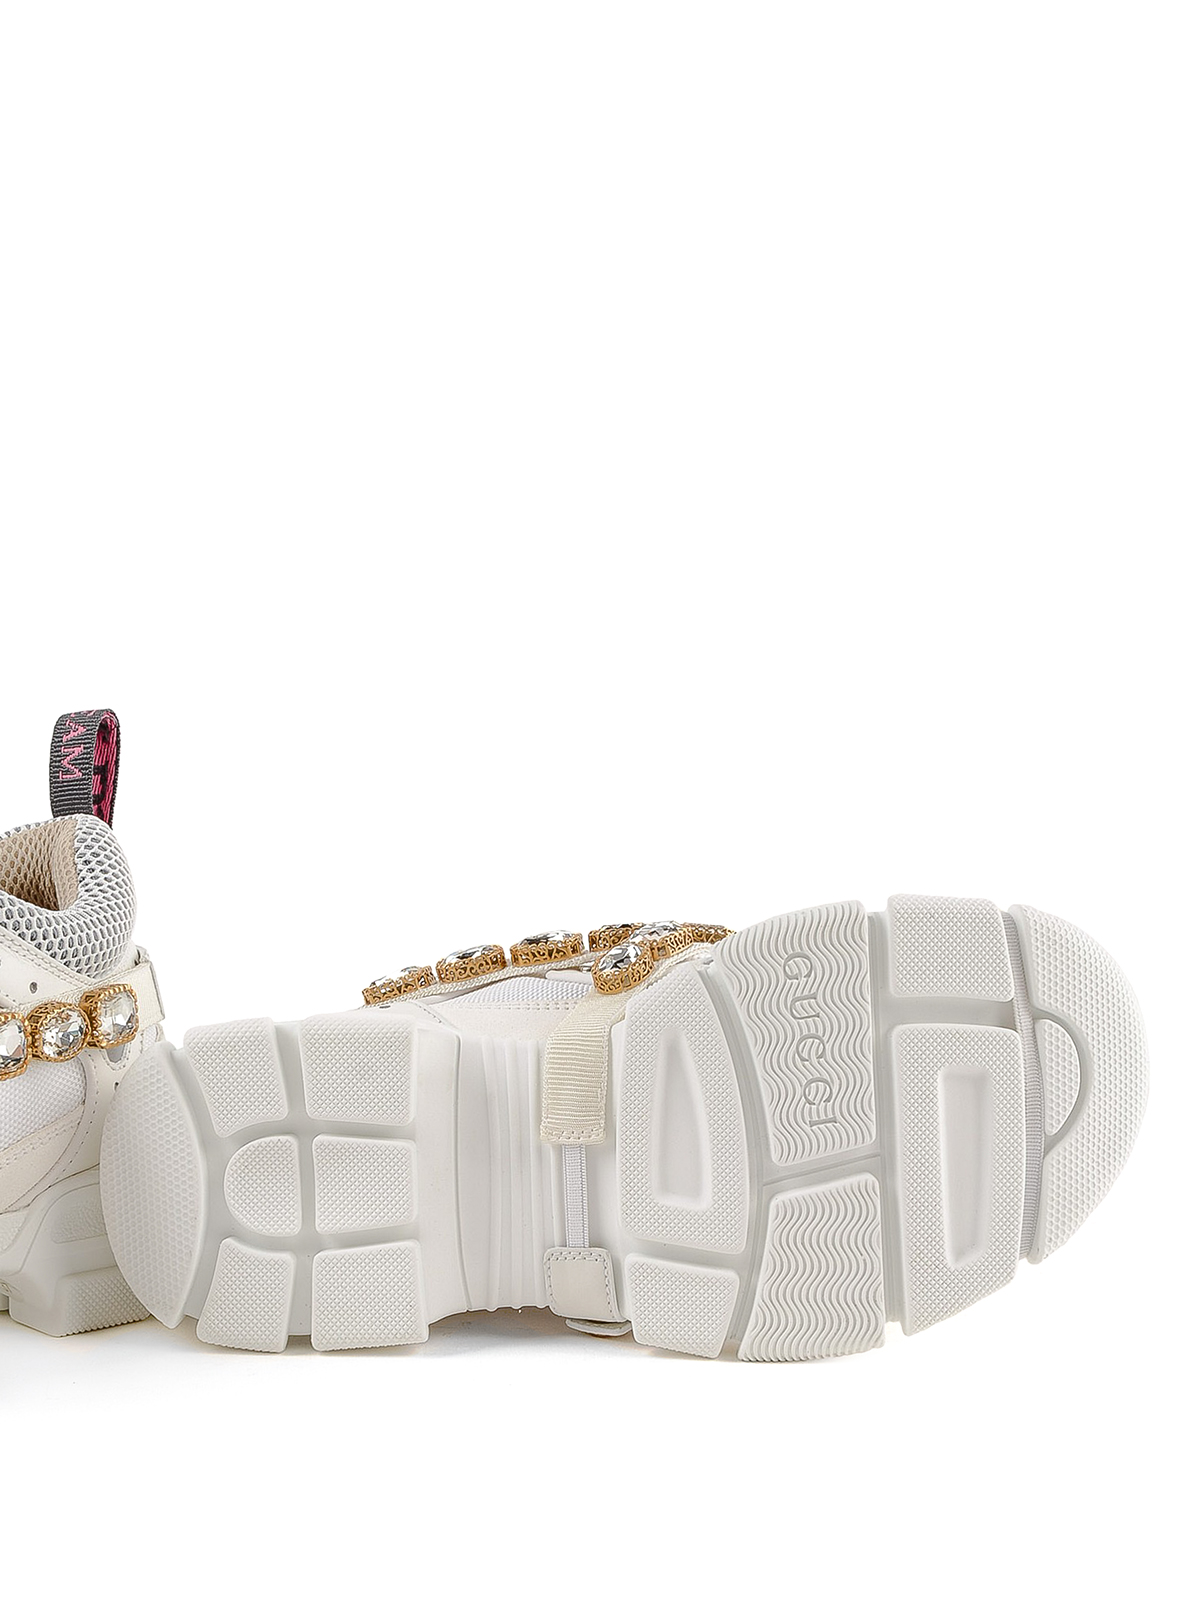 24d6bba33c4 Gucci - Flashtrek sneakers with removable crystals - trainers ...